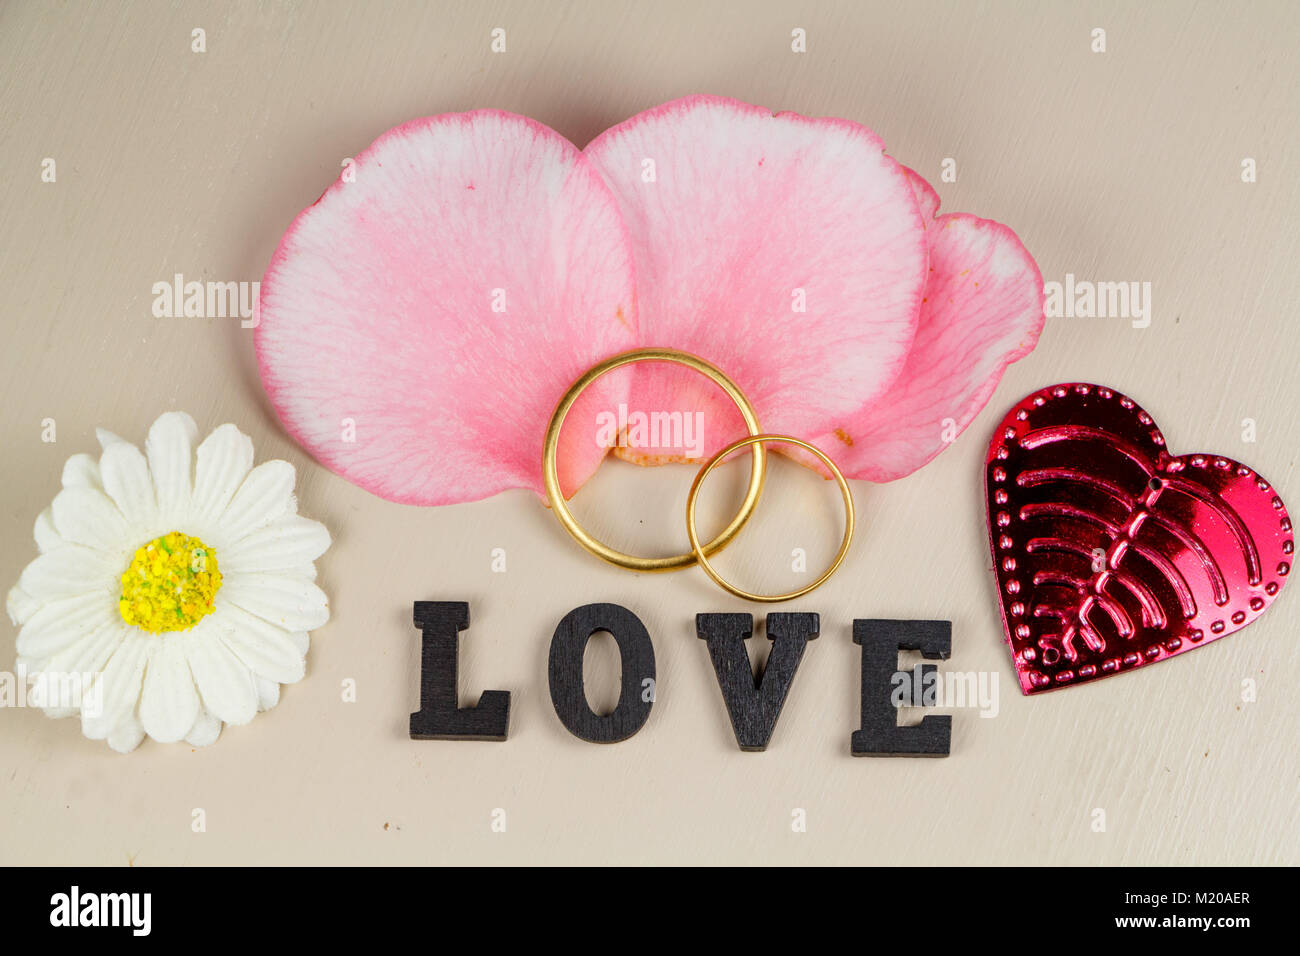 Two wedding rings made in gold, pink petals, pink heart, white ...